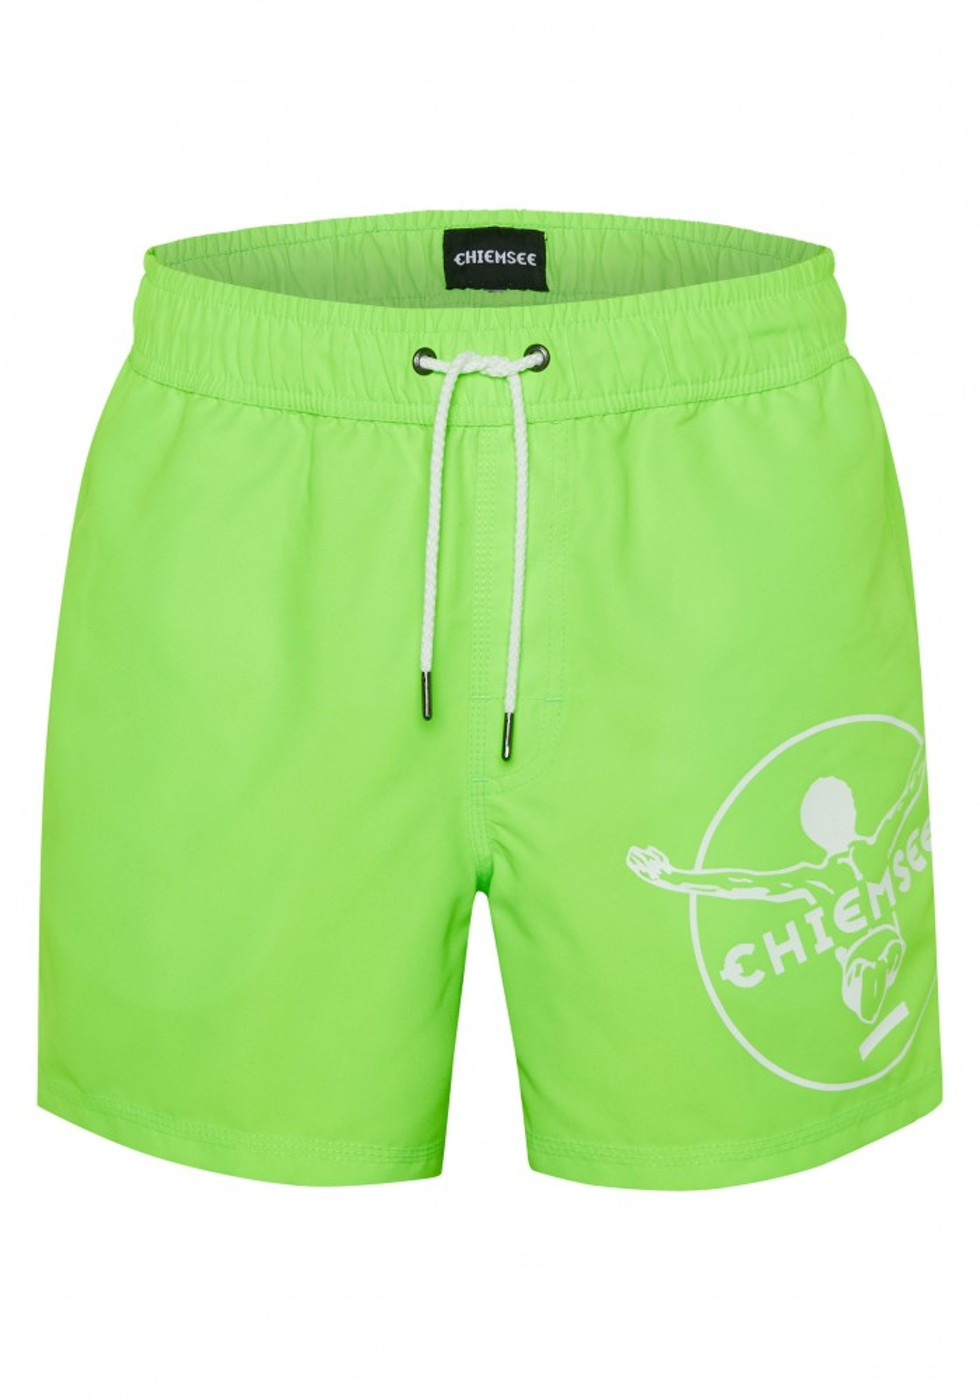 CHIEMSEE MORRO BAY Men, Swim Shorts - Herren